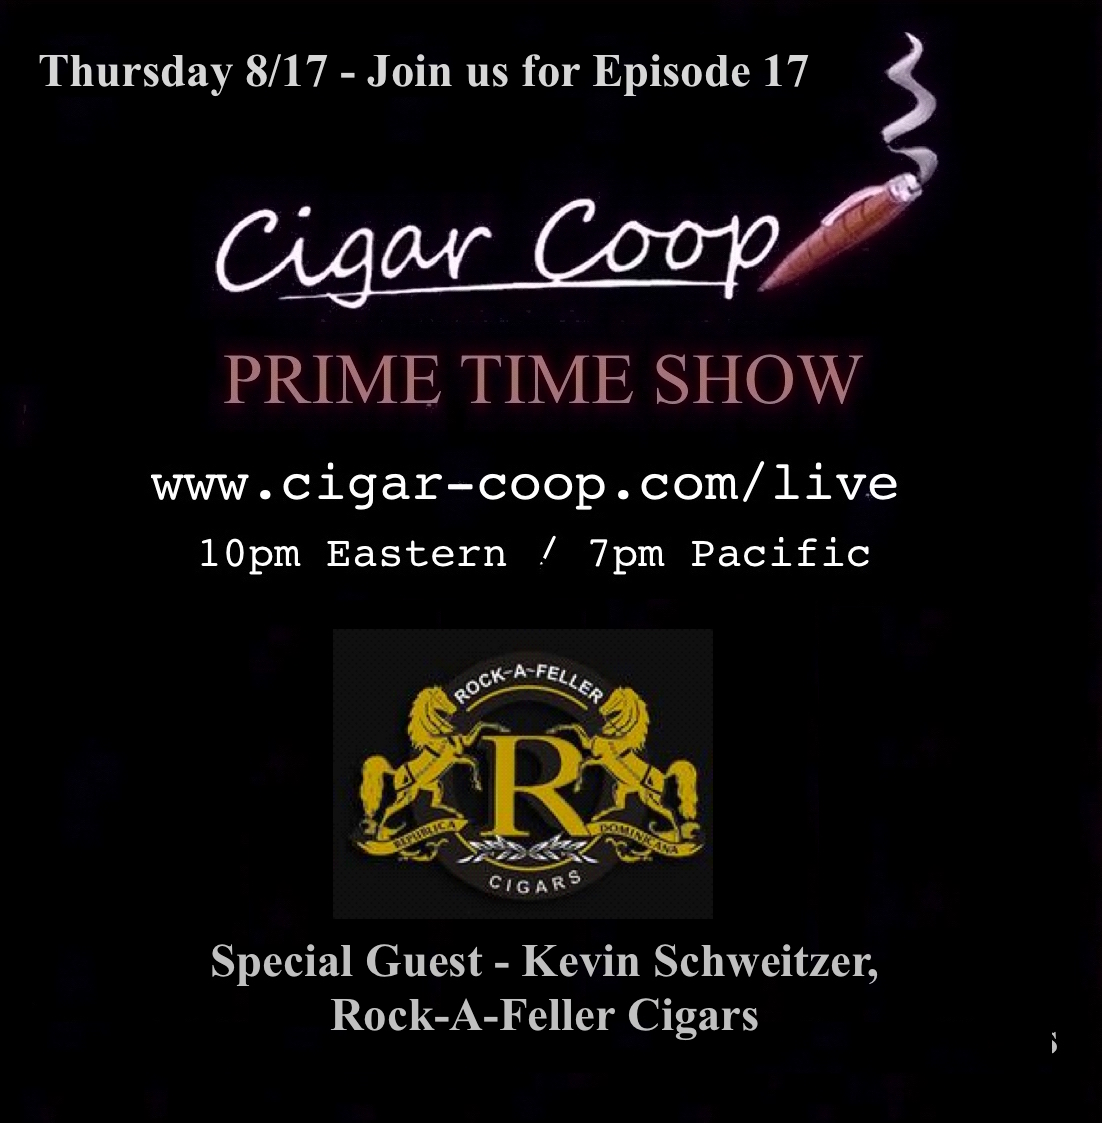 Announcement: Prime Time Show Episode 17: 8/17/17 10pm Eastern, 7pm Pacific